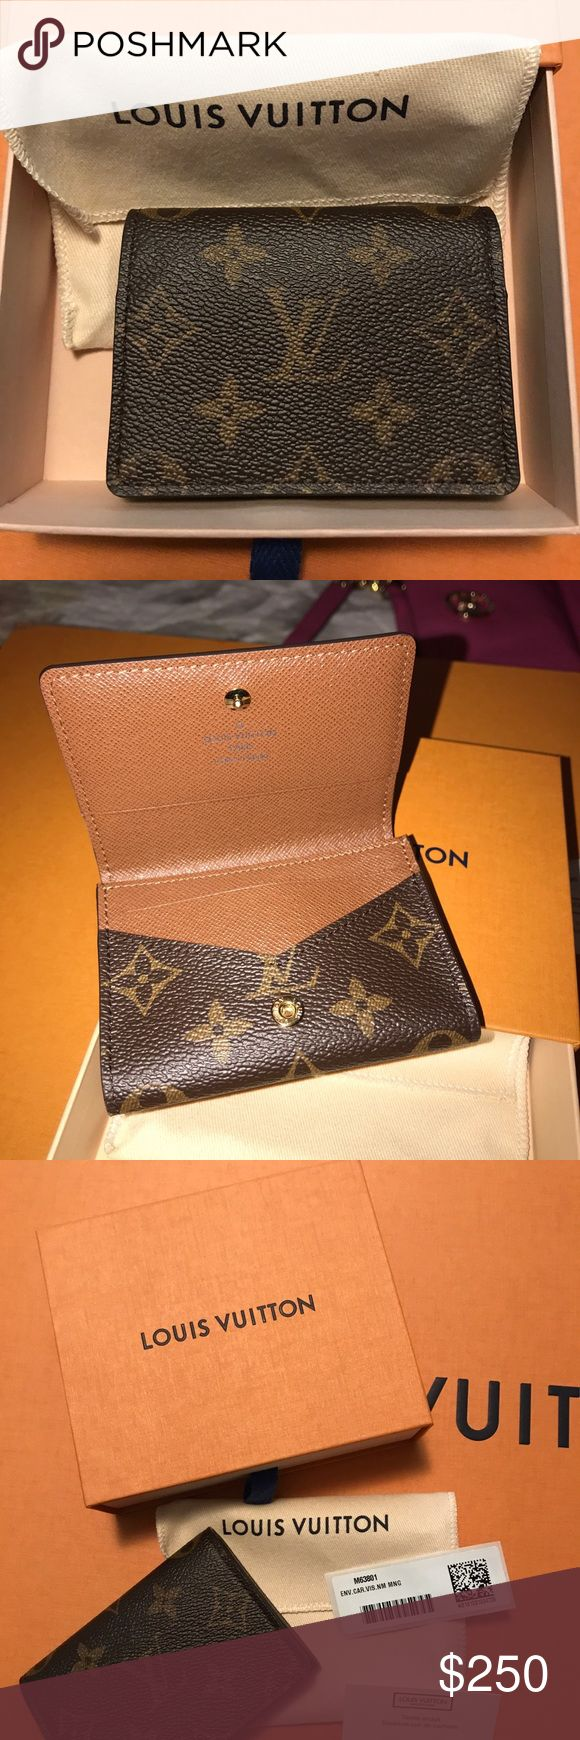 LV coin/card holder Original Louis Vuitton monogram coin/Card holder, brand new with tags in box. NO low bids, price is firm! Louis Vuitton Bags Wallets